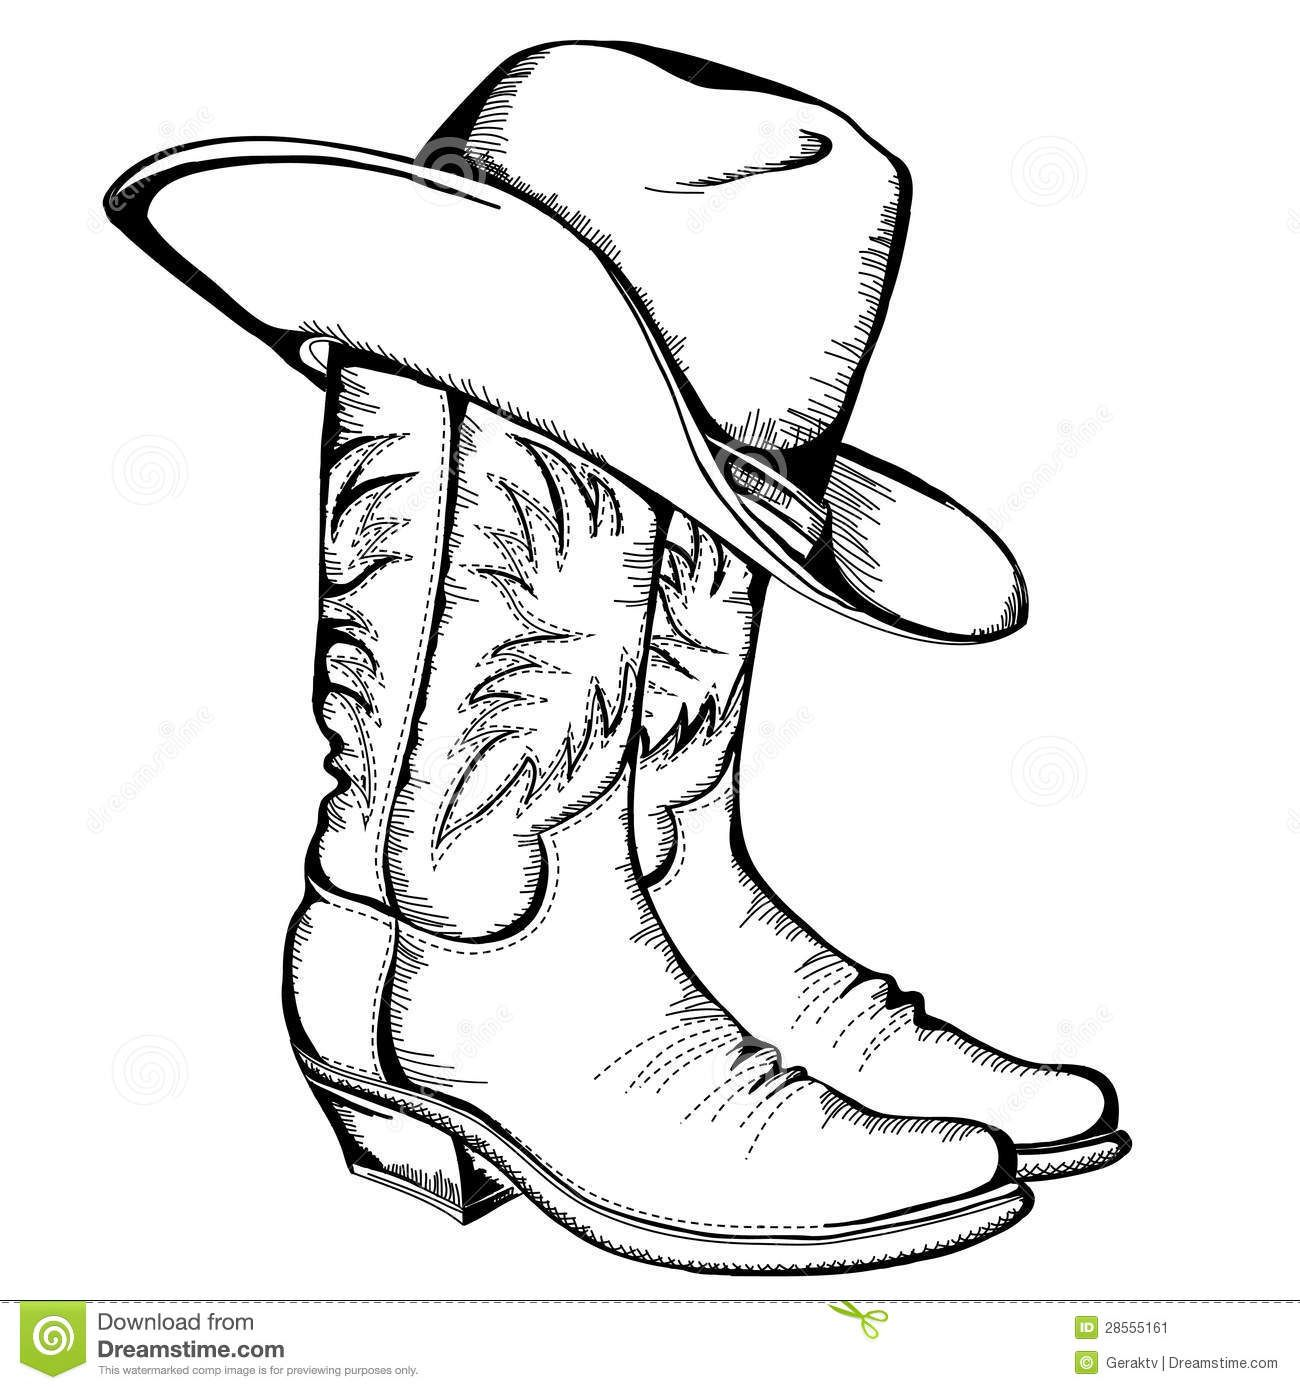 Printable coloring pictures of cowboy boots - I Want A Cowboy Boot Tattoo For My Grandfather